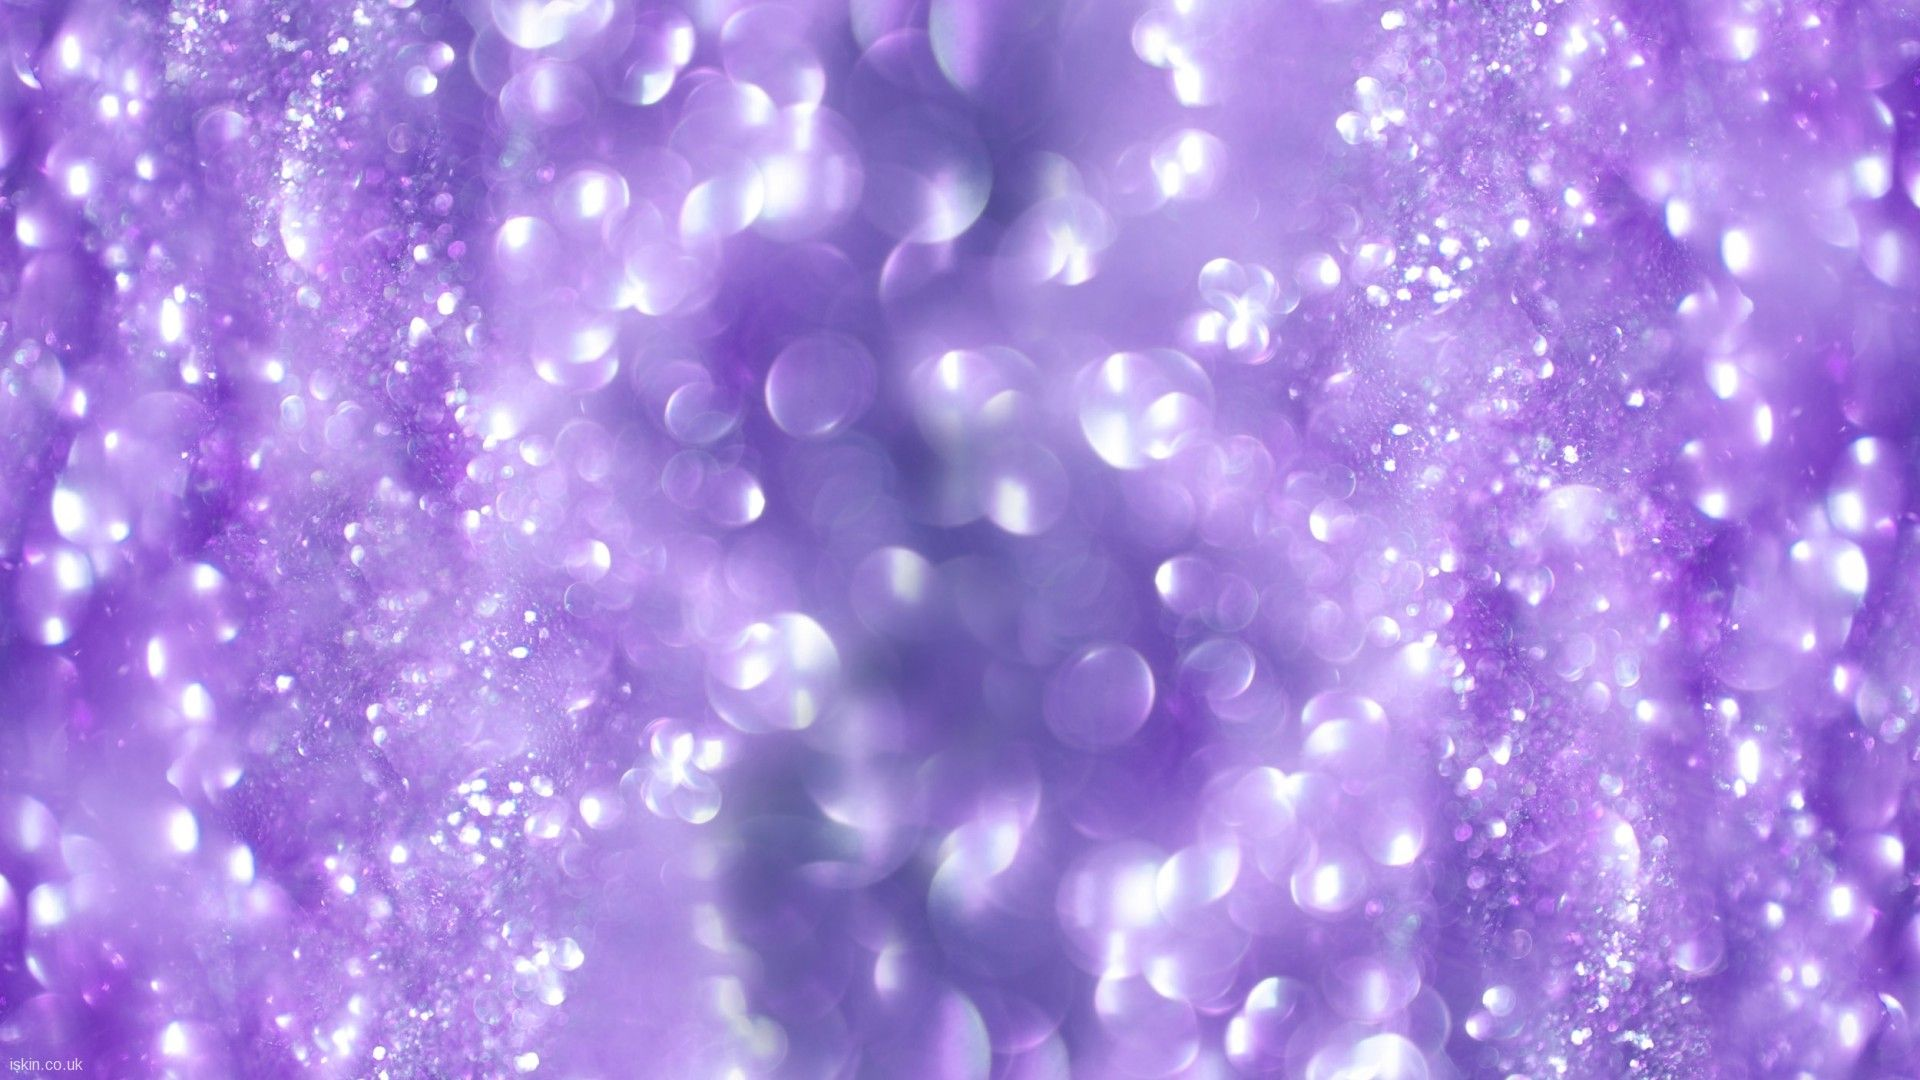 Sparkle wallpapers best wallpapers for Purple wallpaper for walls